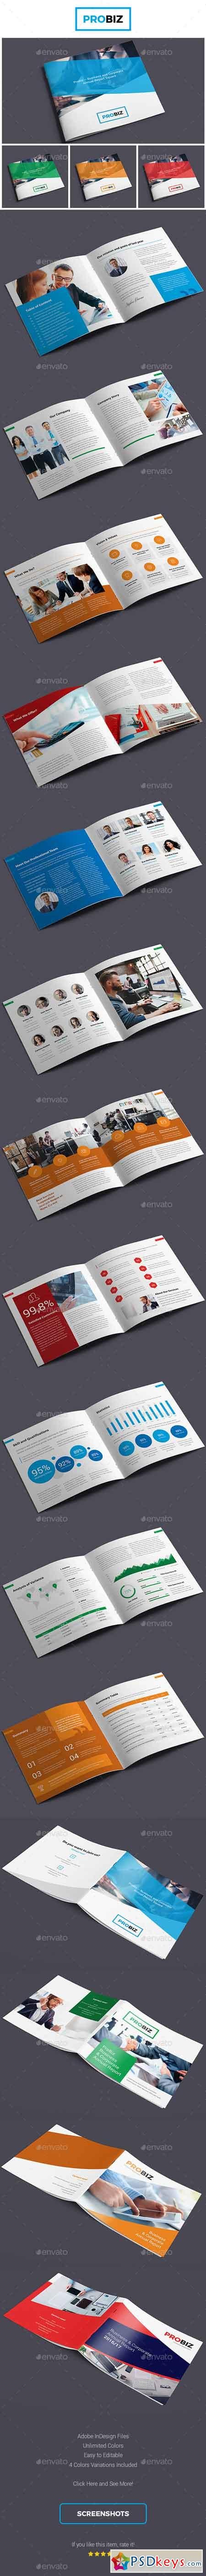 ProBiz – Business and Corporate Annual Report Square 19439606